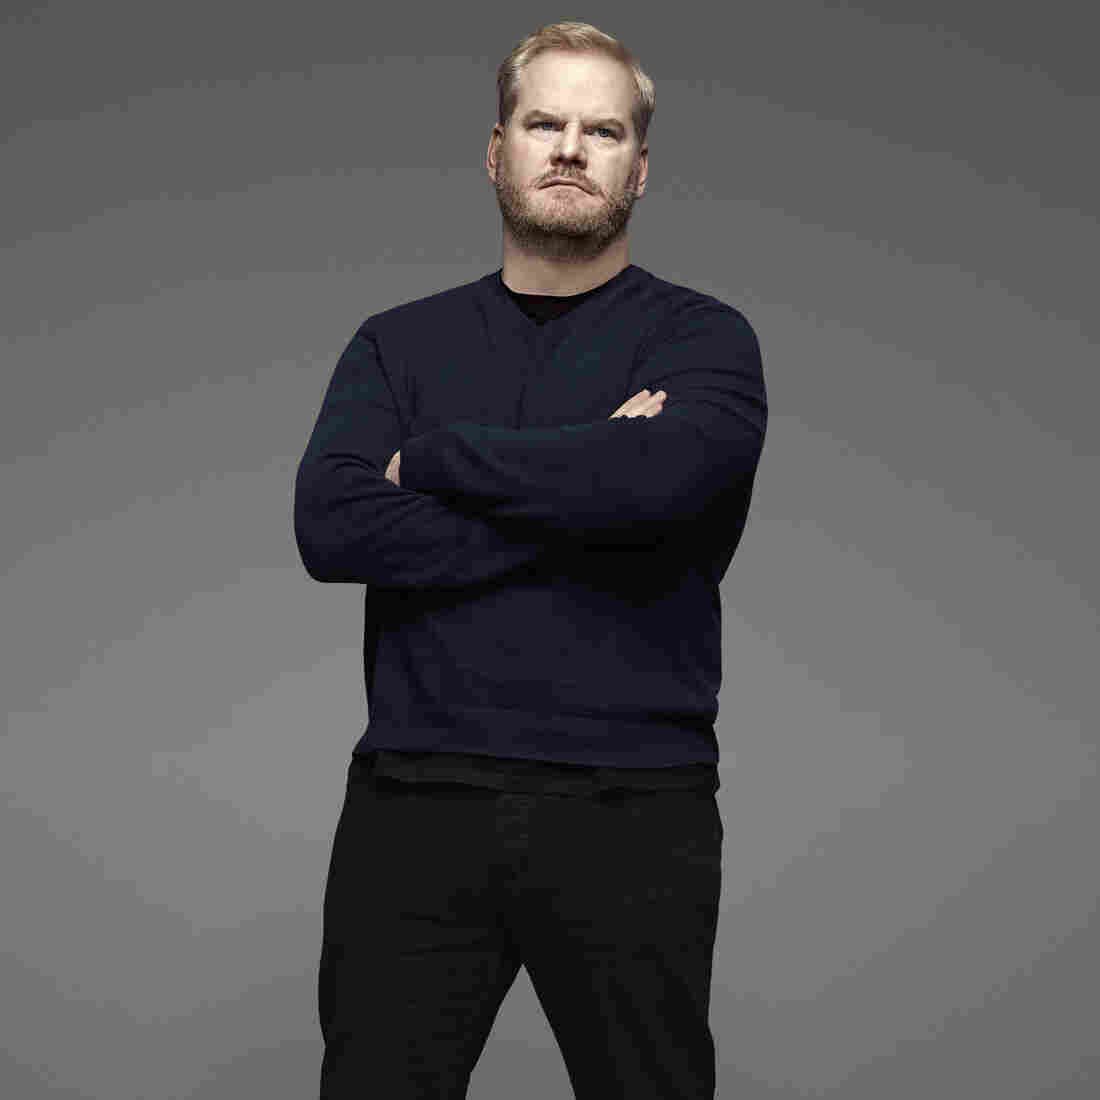 """Jim Gaffigan spent years in stand-up before, finally, someone took a chance on him: that someone just happened to be David Letterman. """"The weird thing is, because Letterman thought I was good, everyone changed their mind,"""" he says. """"It changed the narrative surrounding me, completely."""""""